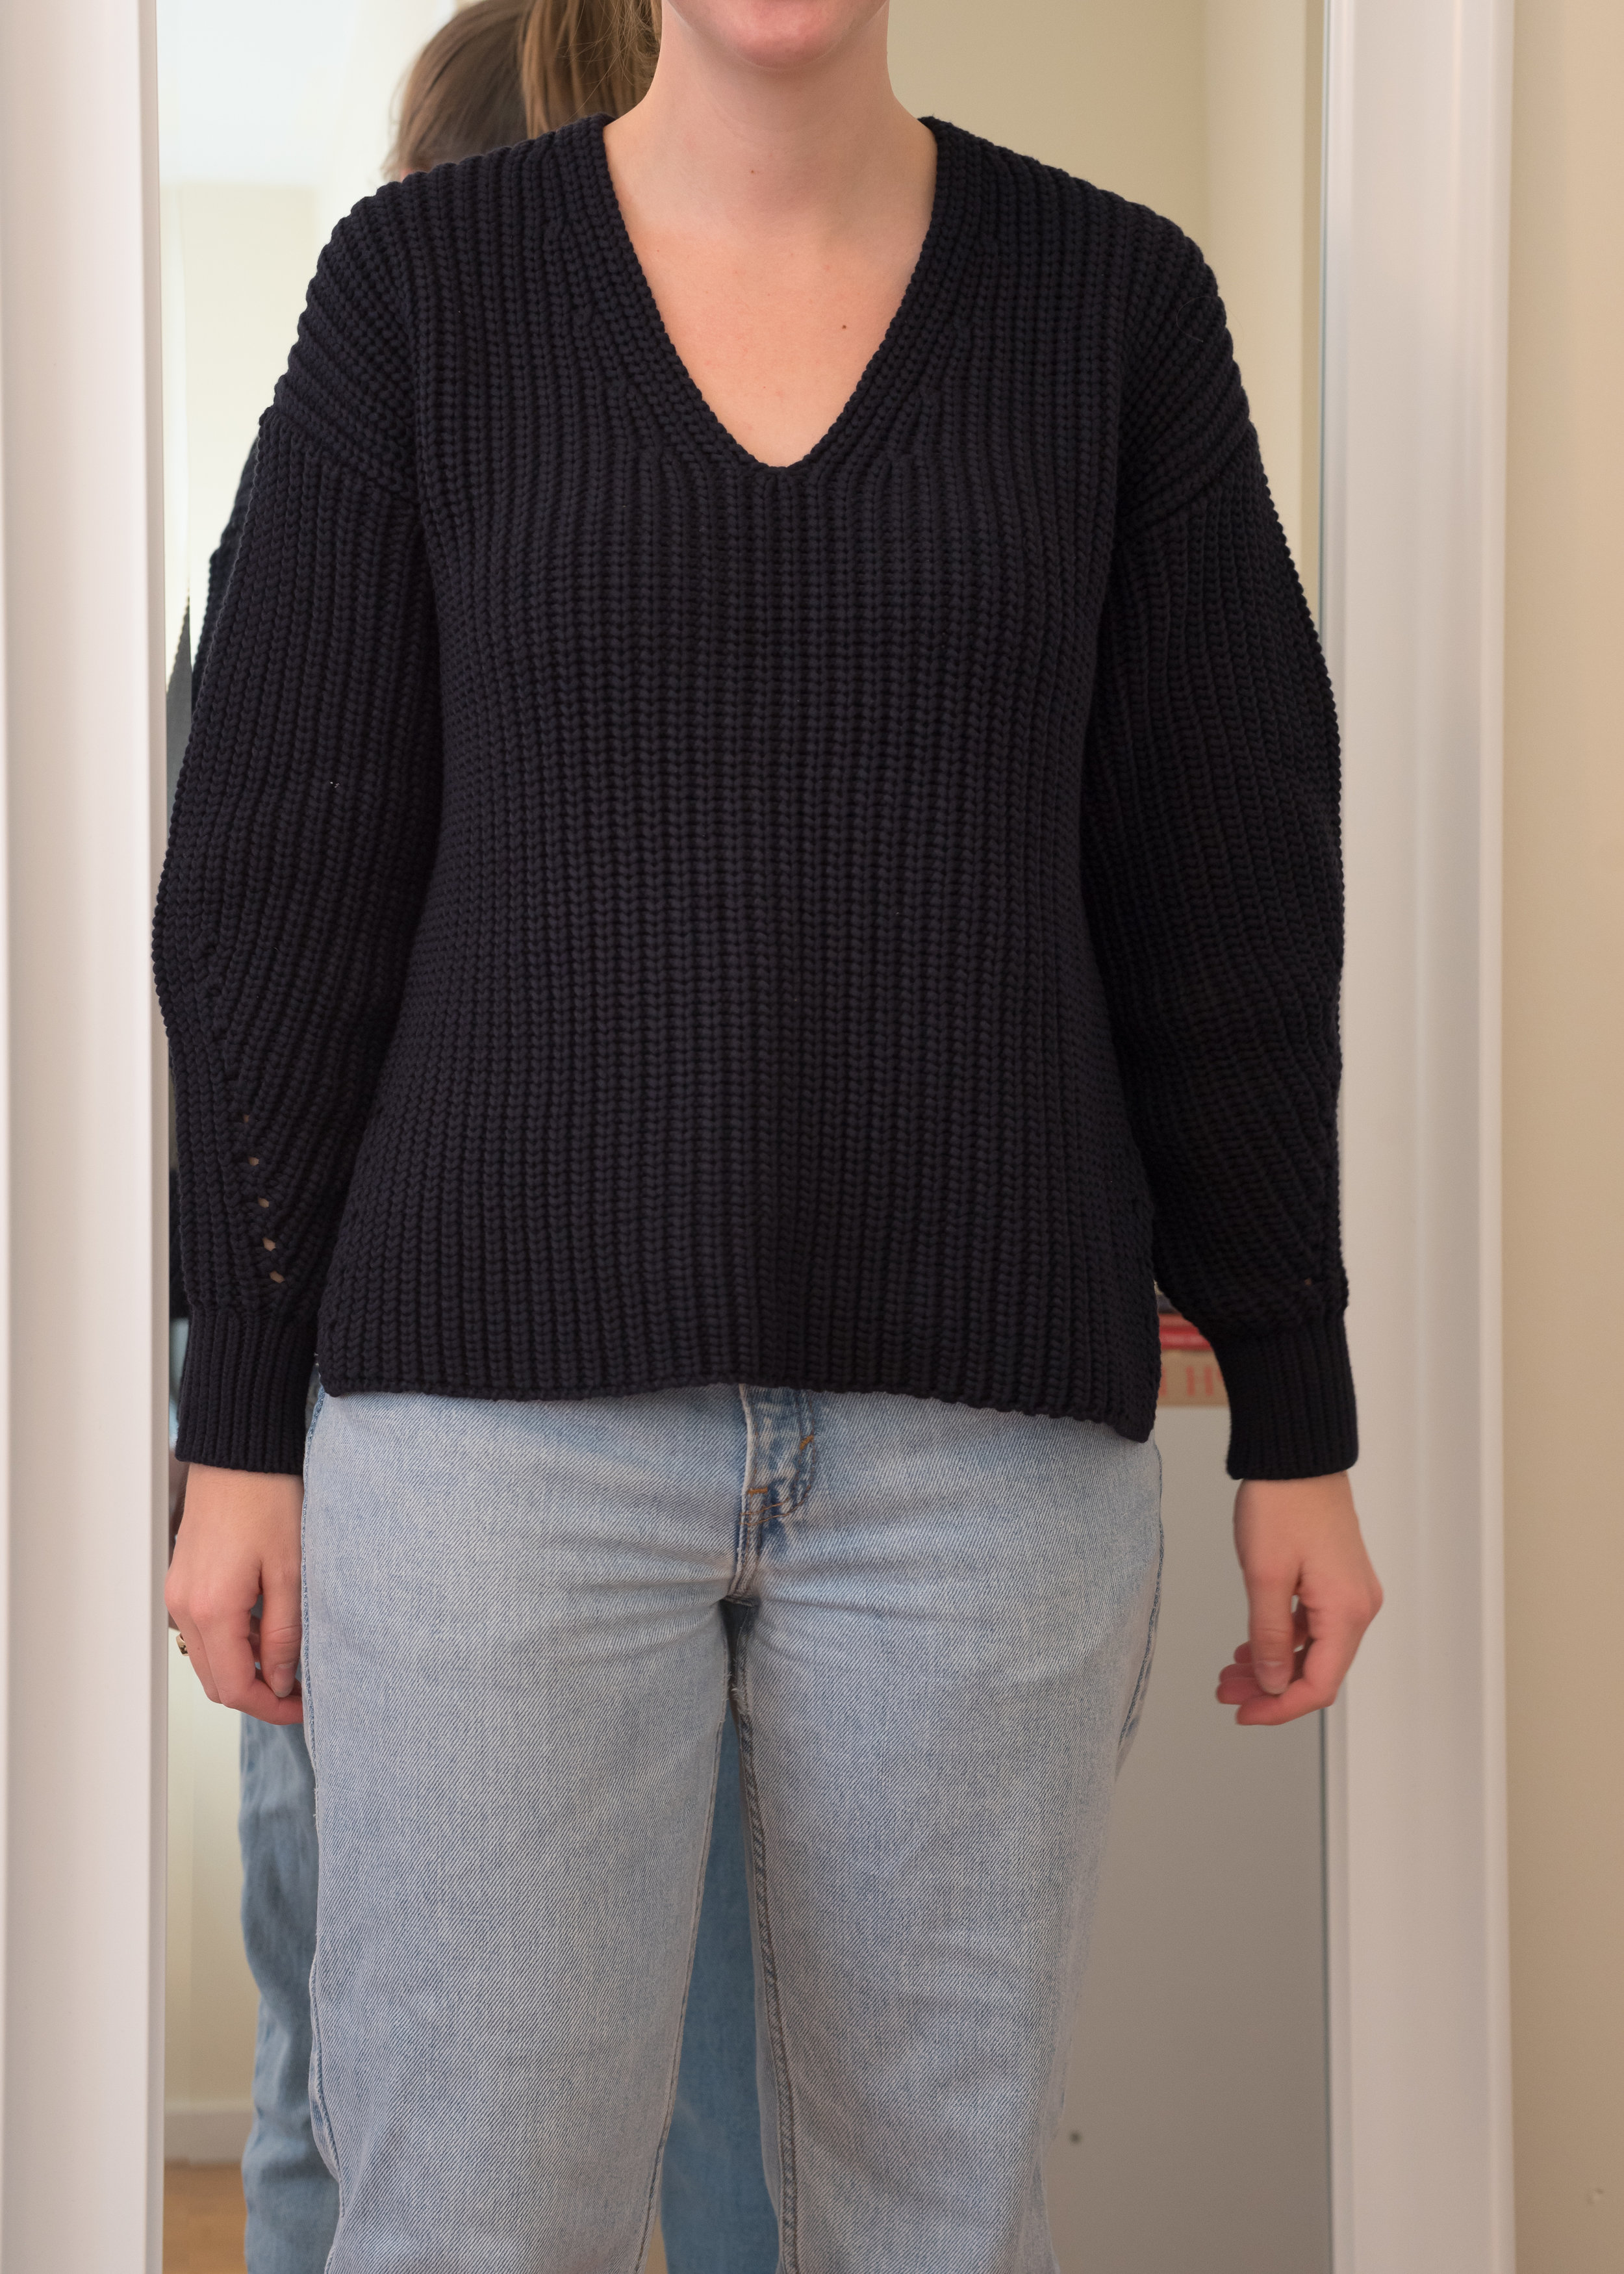 Everlane Texture Cotton V-Neck Sweater - Front View